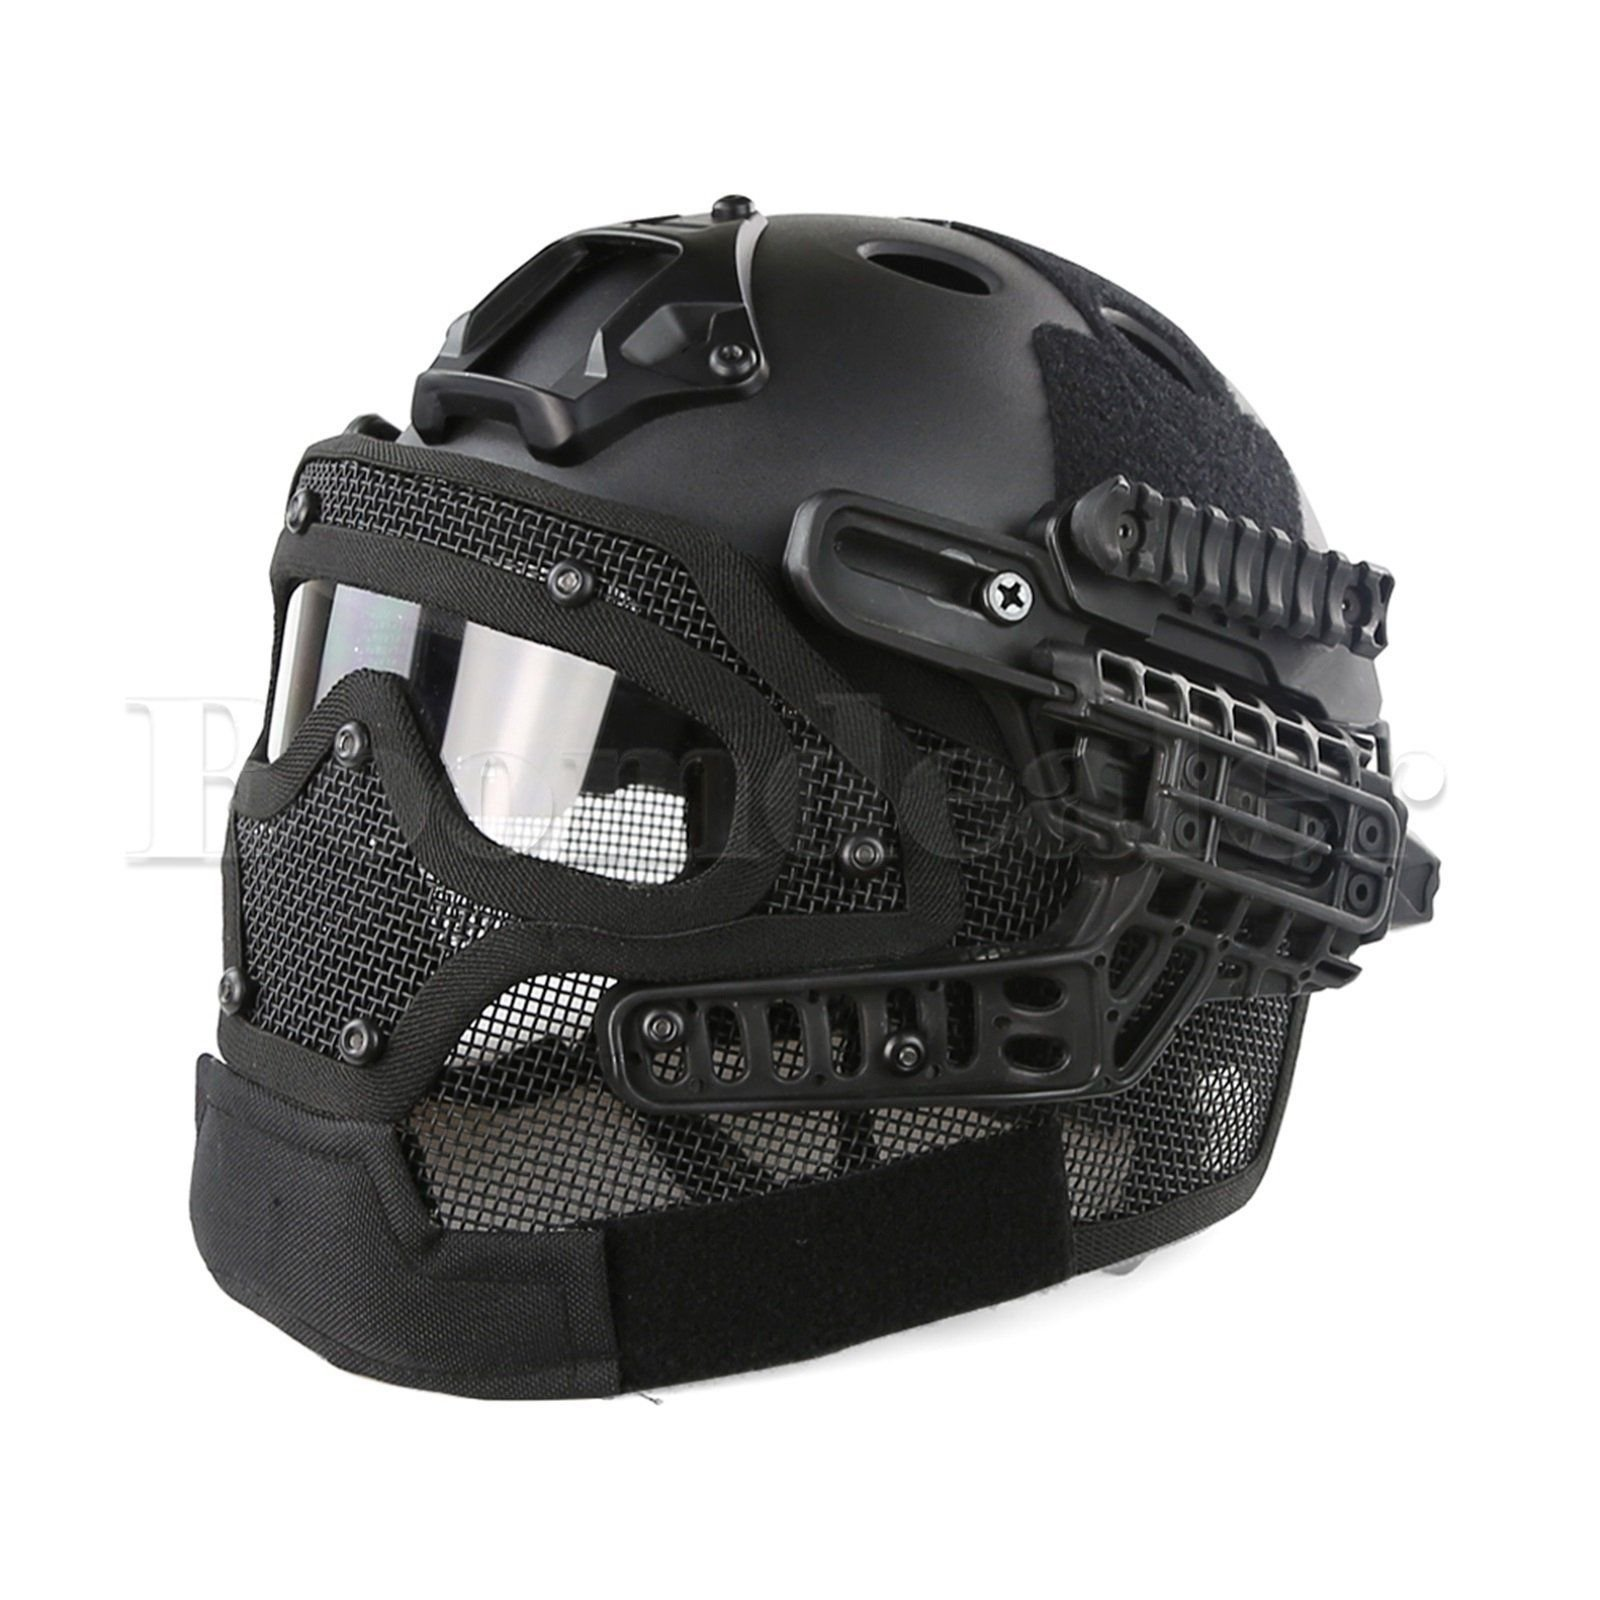 Tactical Airsoft Paintball Fast Helmet Protective with Mask Goggles & G4 System by rungrueng